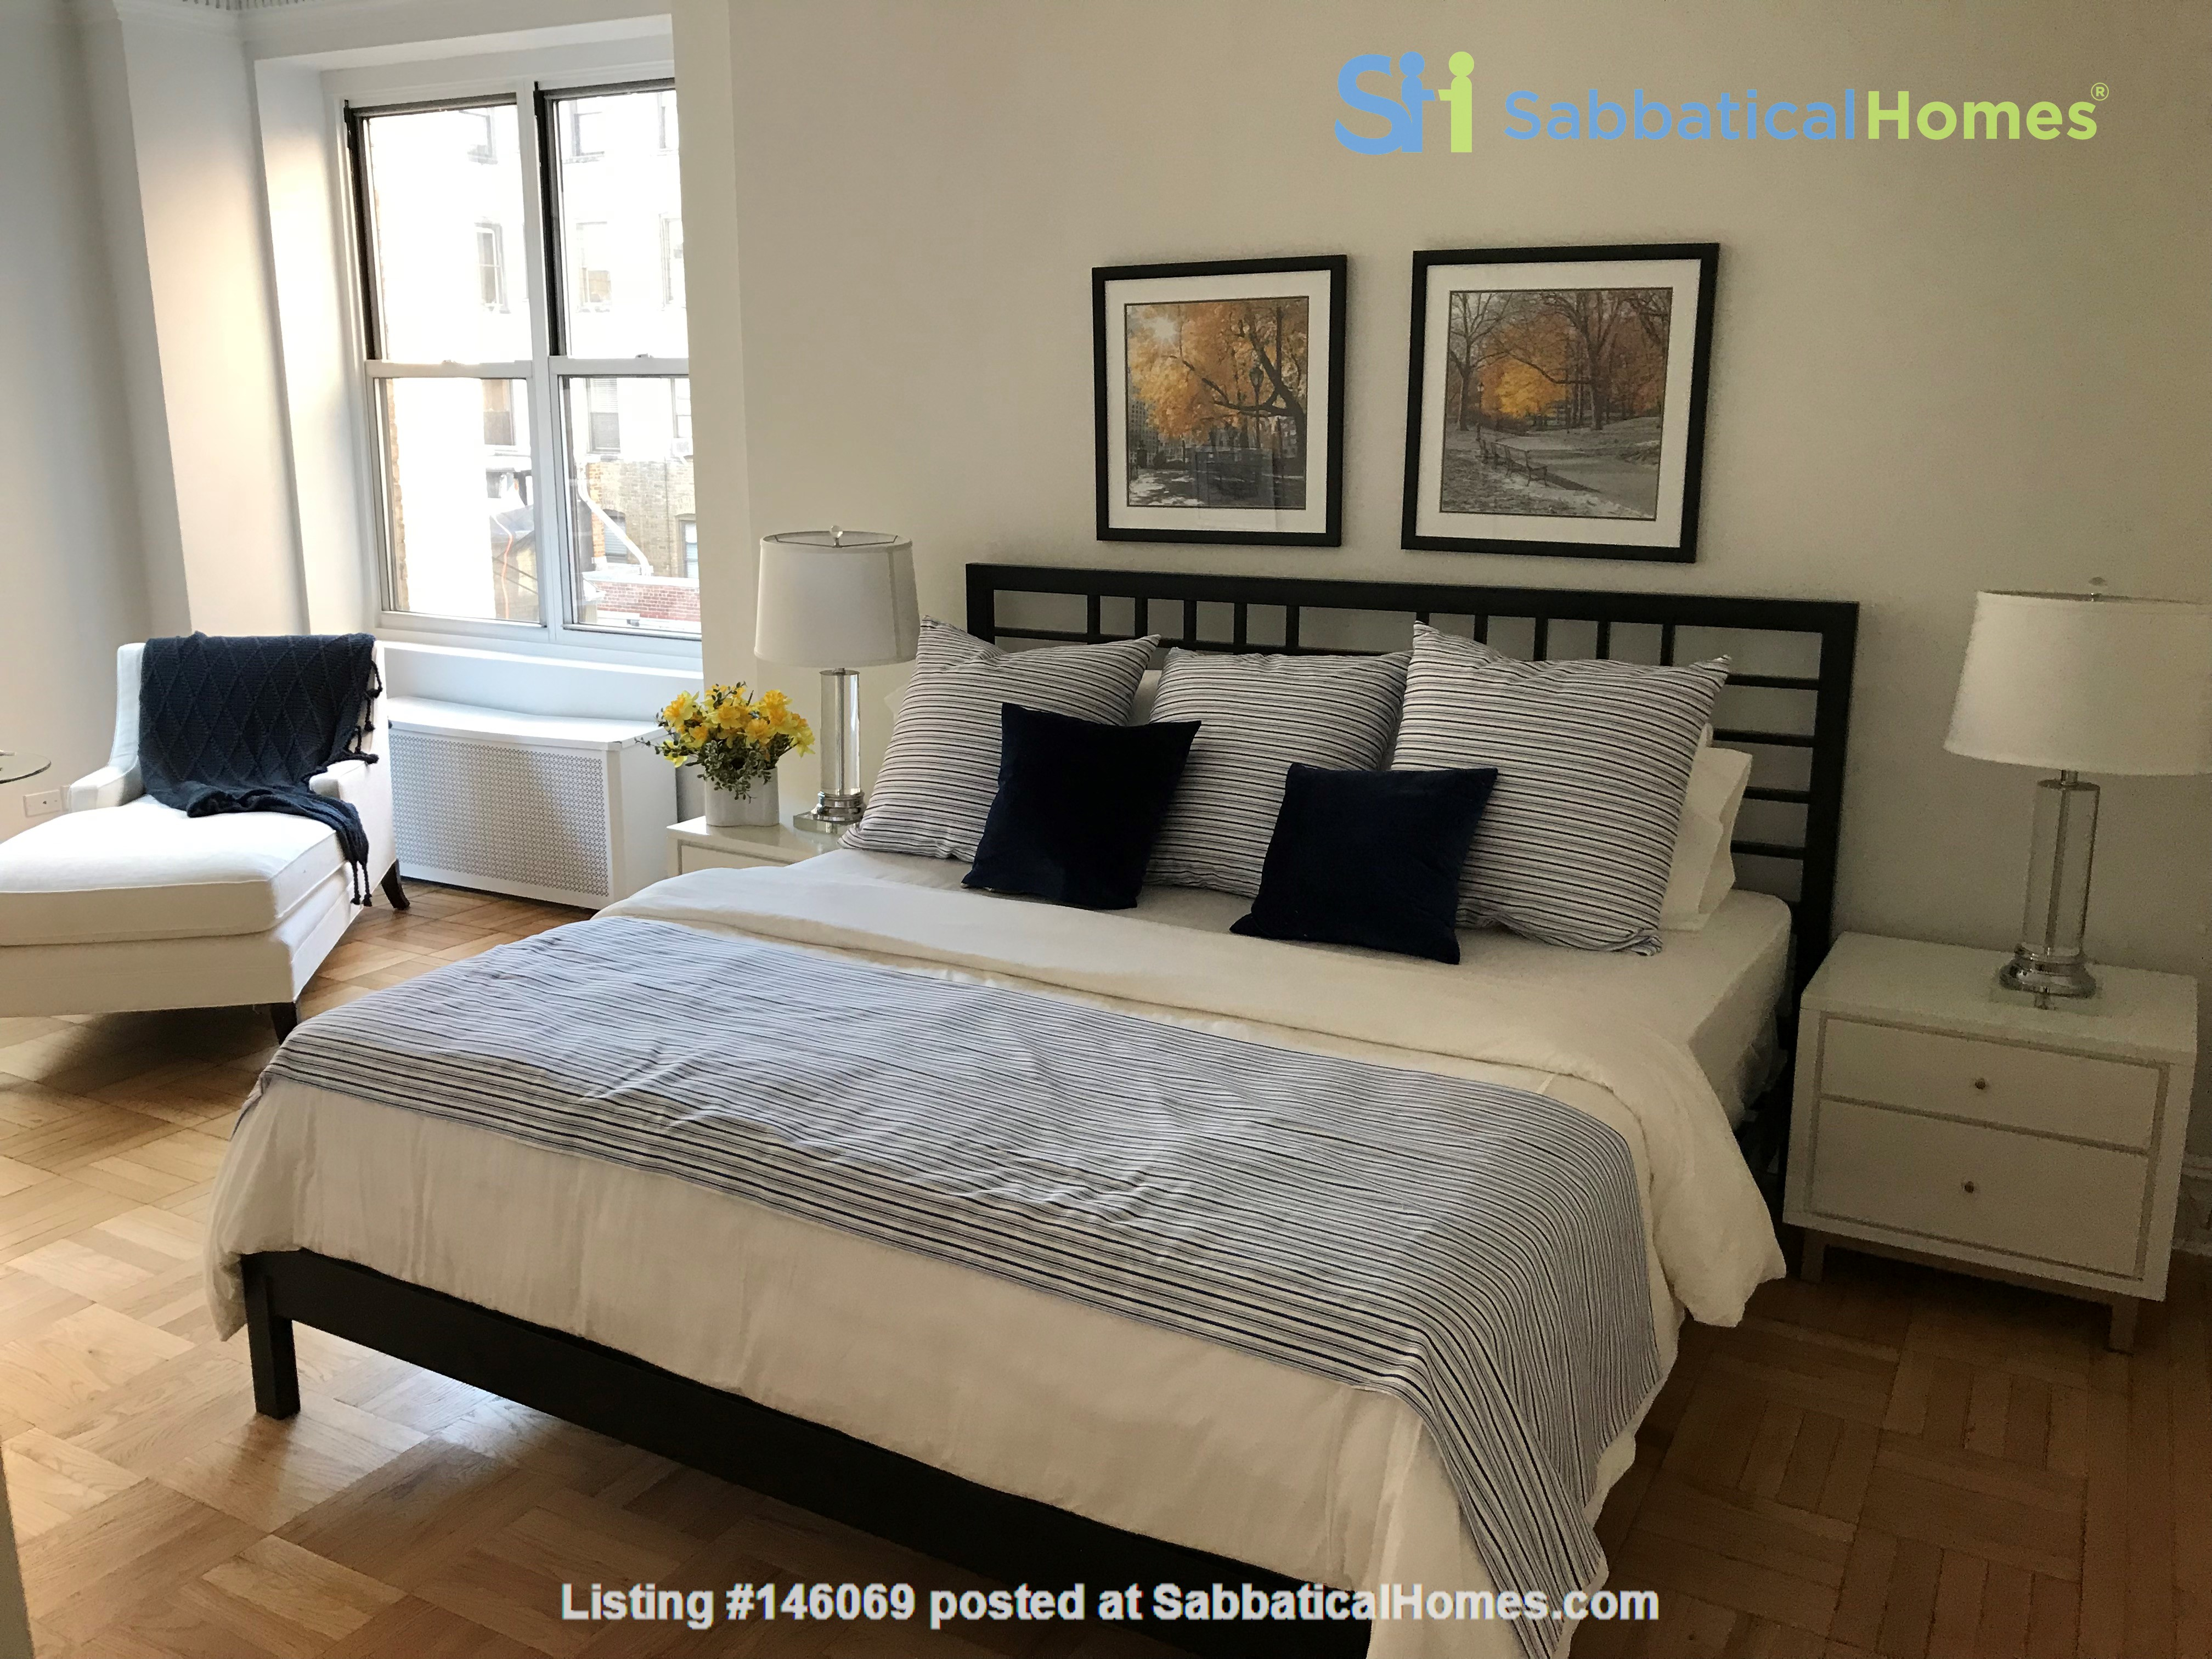 Large, sun-filled 2 bedroom 2 full-bath across from Columbia University Home Rental in New York 1